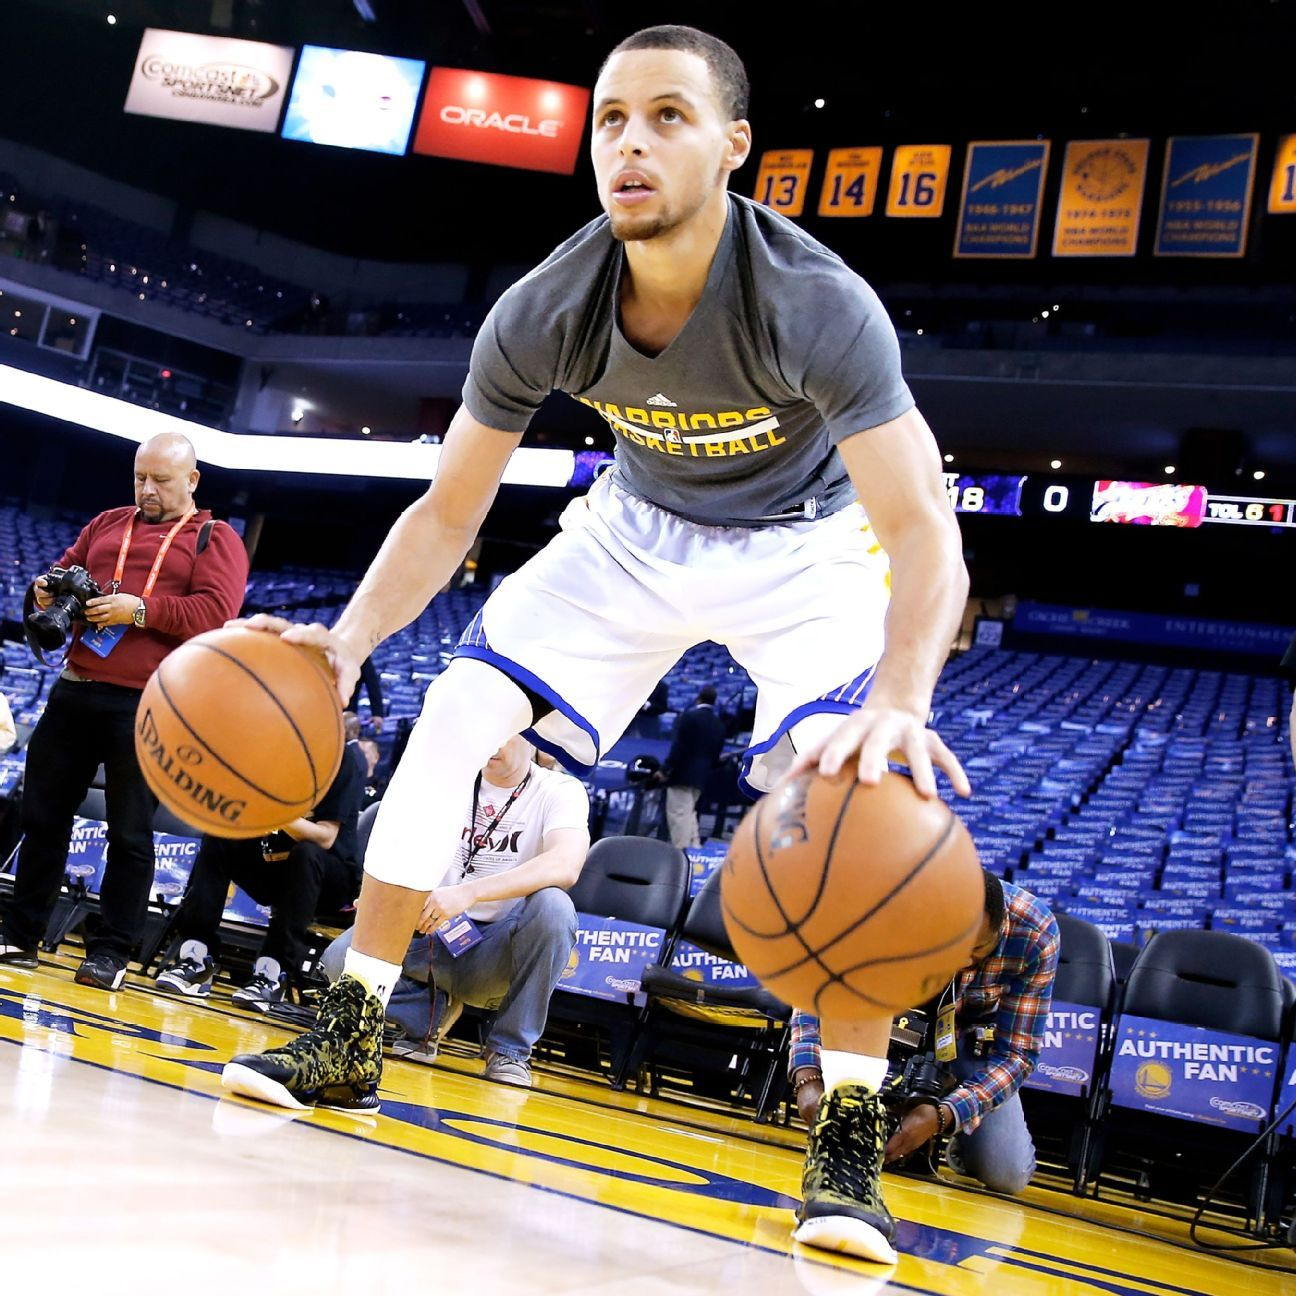 Nba Stephen Curry: How Stephen Curry Of Golden State Warriors Gets Even